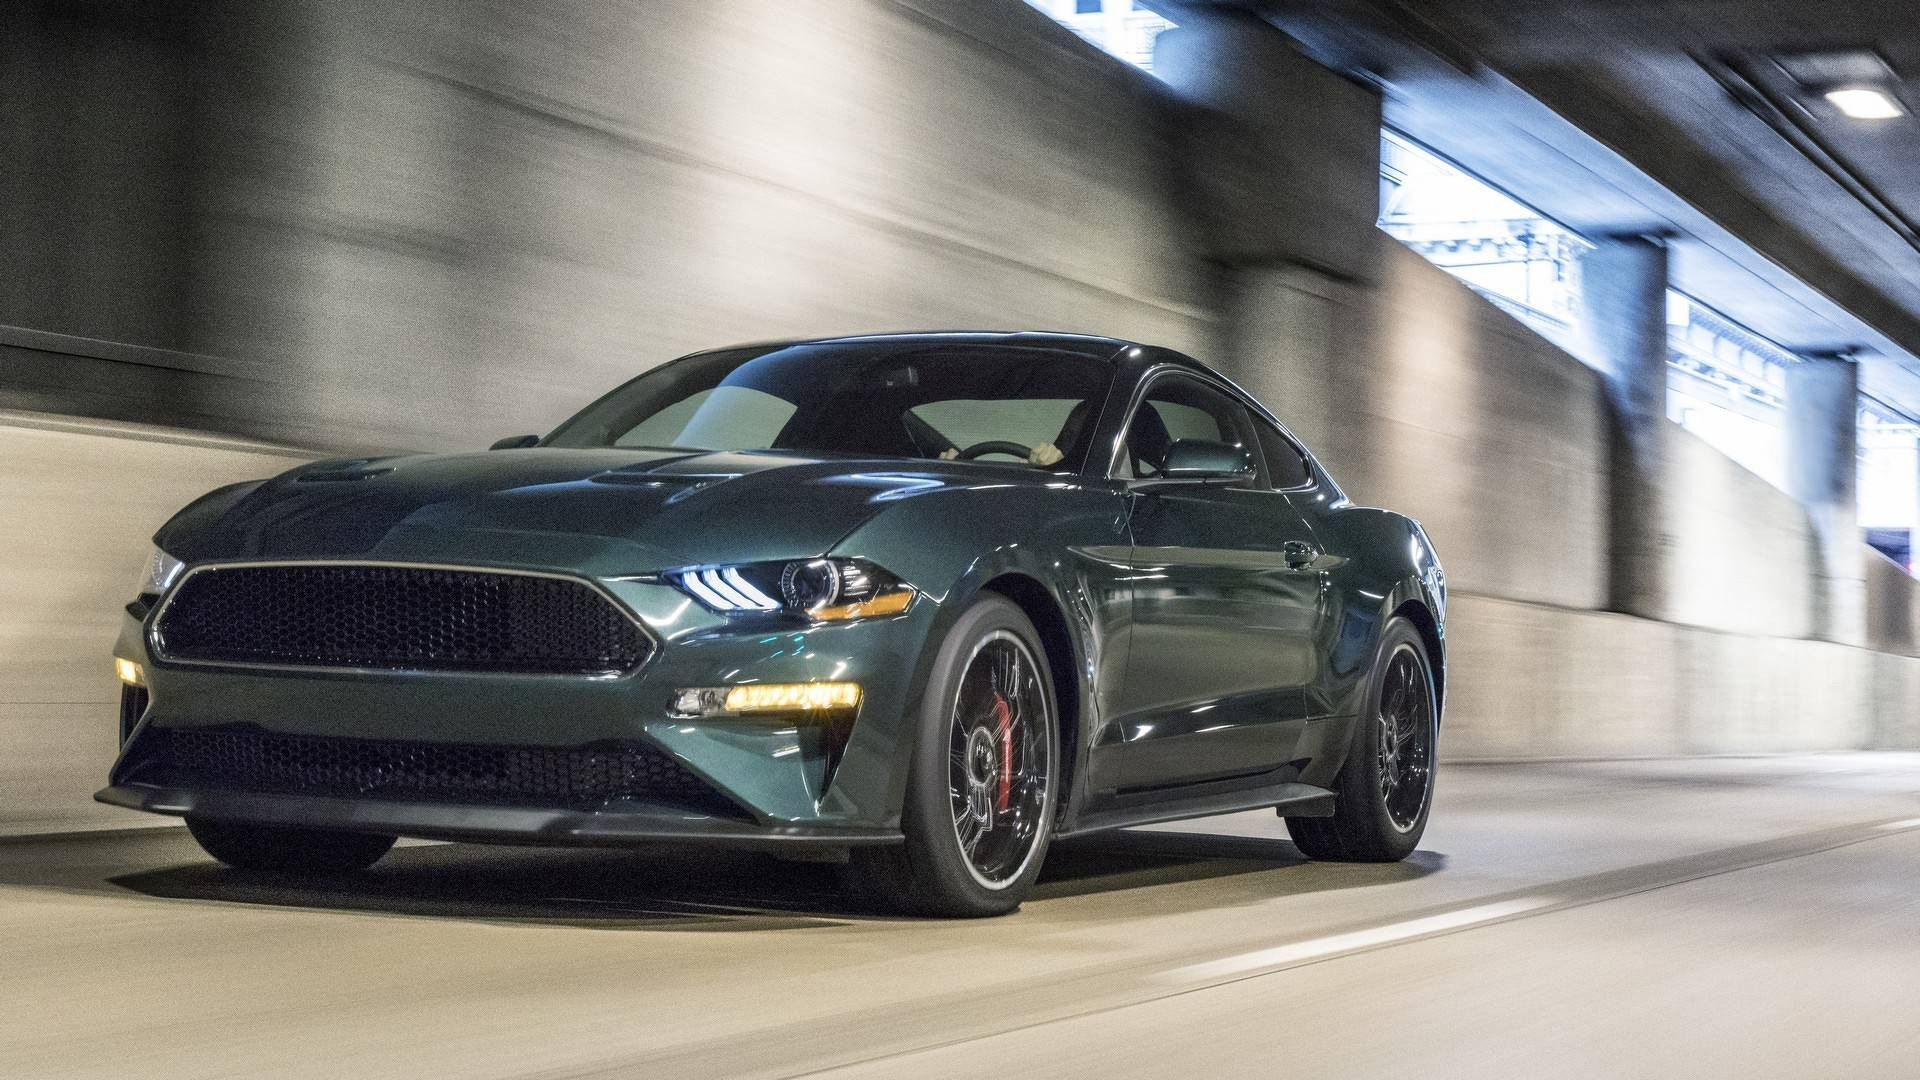 How Much Does A 2020 Mustang Convertible Cost